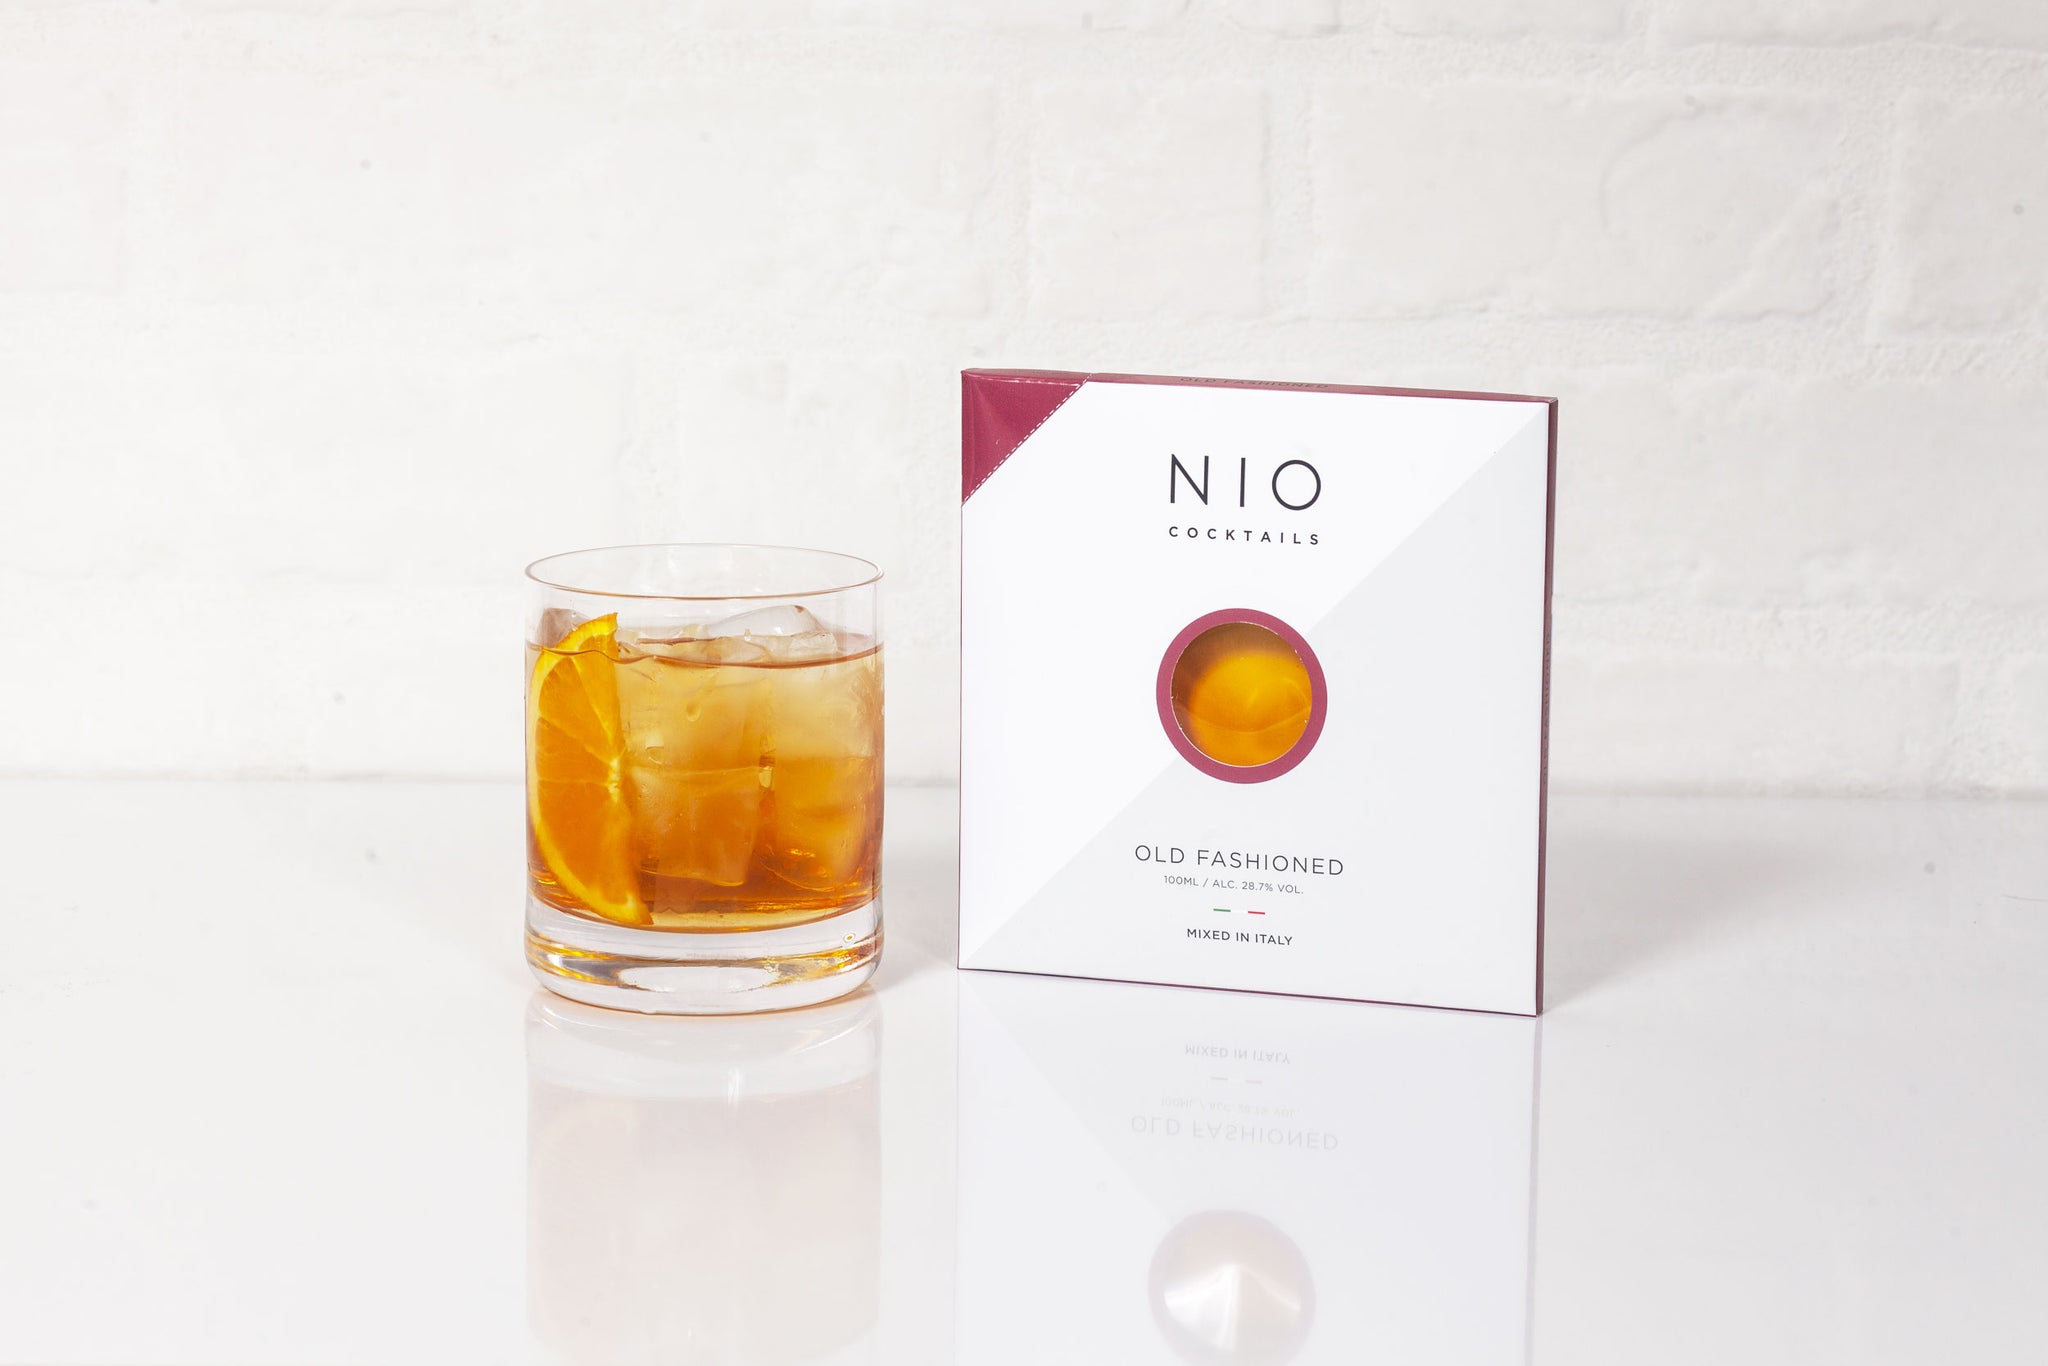 nio_cocktails_old_fashioned_in_busta_pronto_a_casa